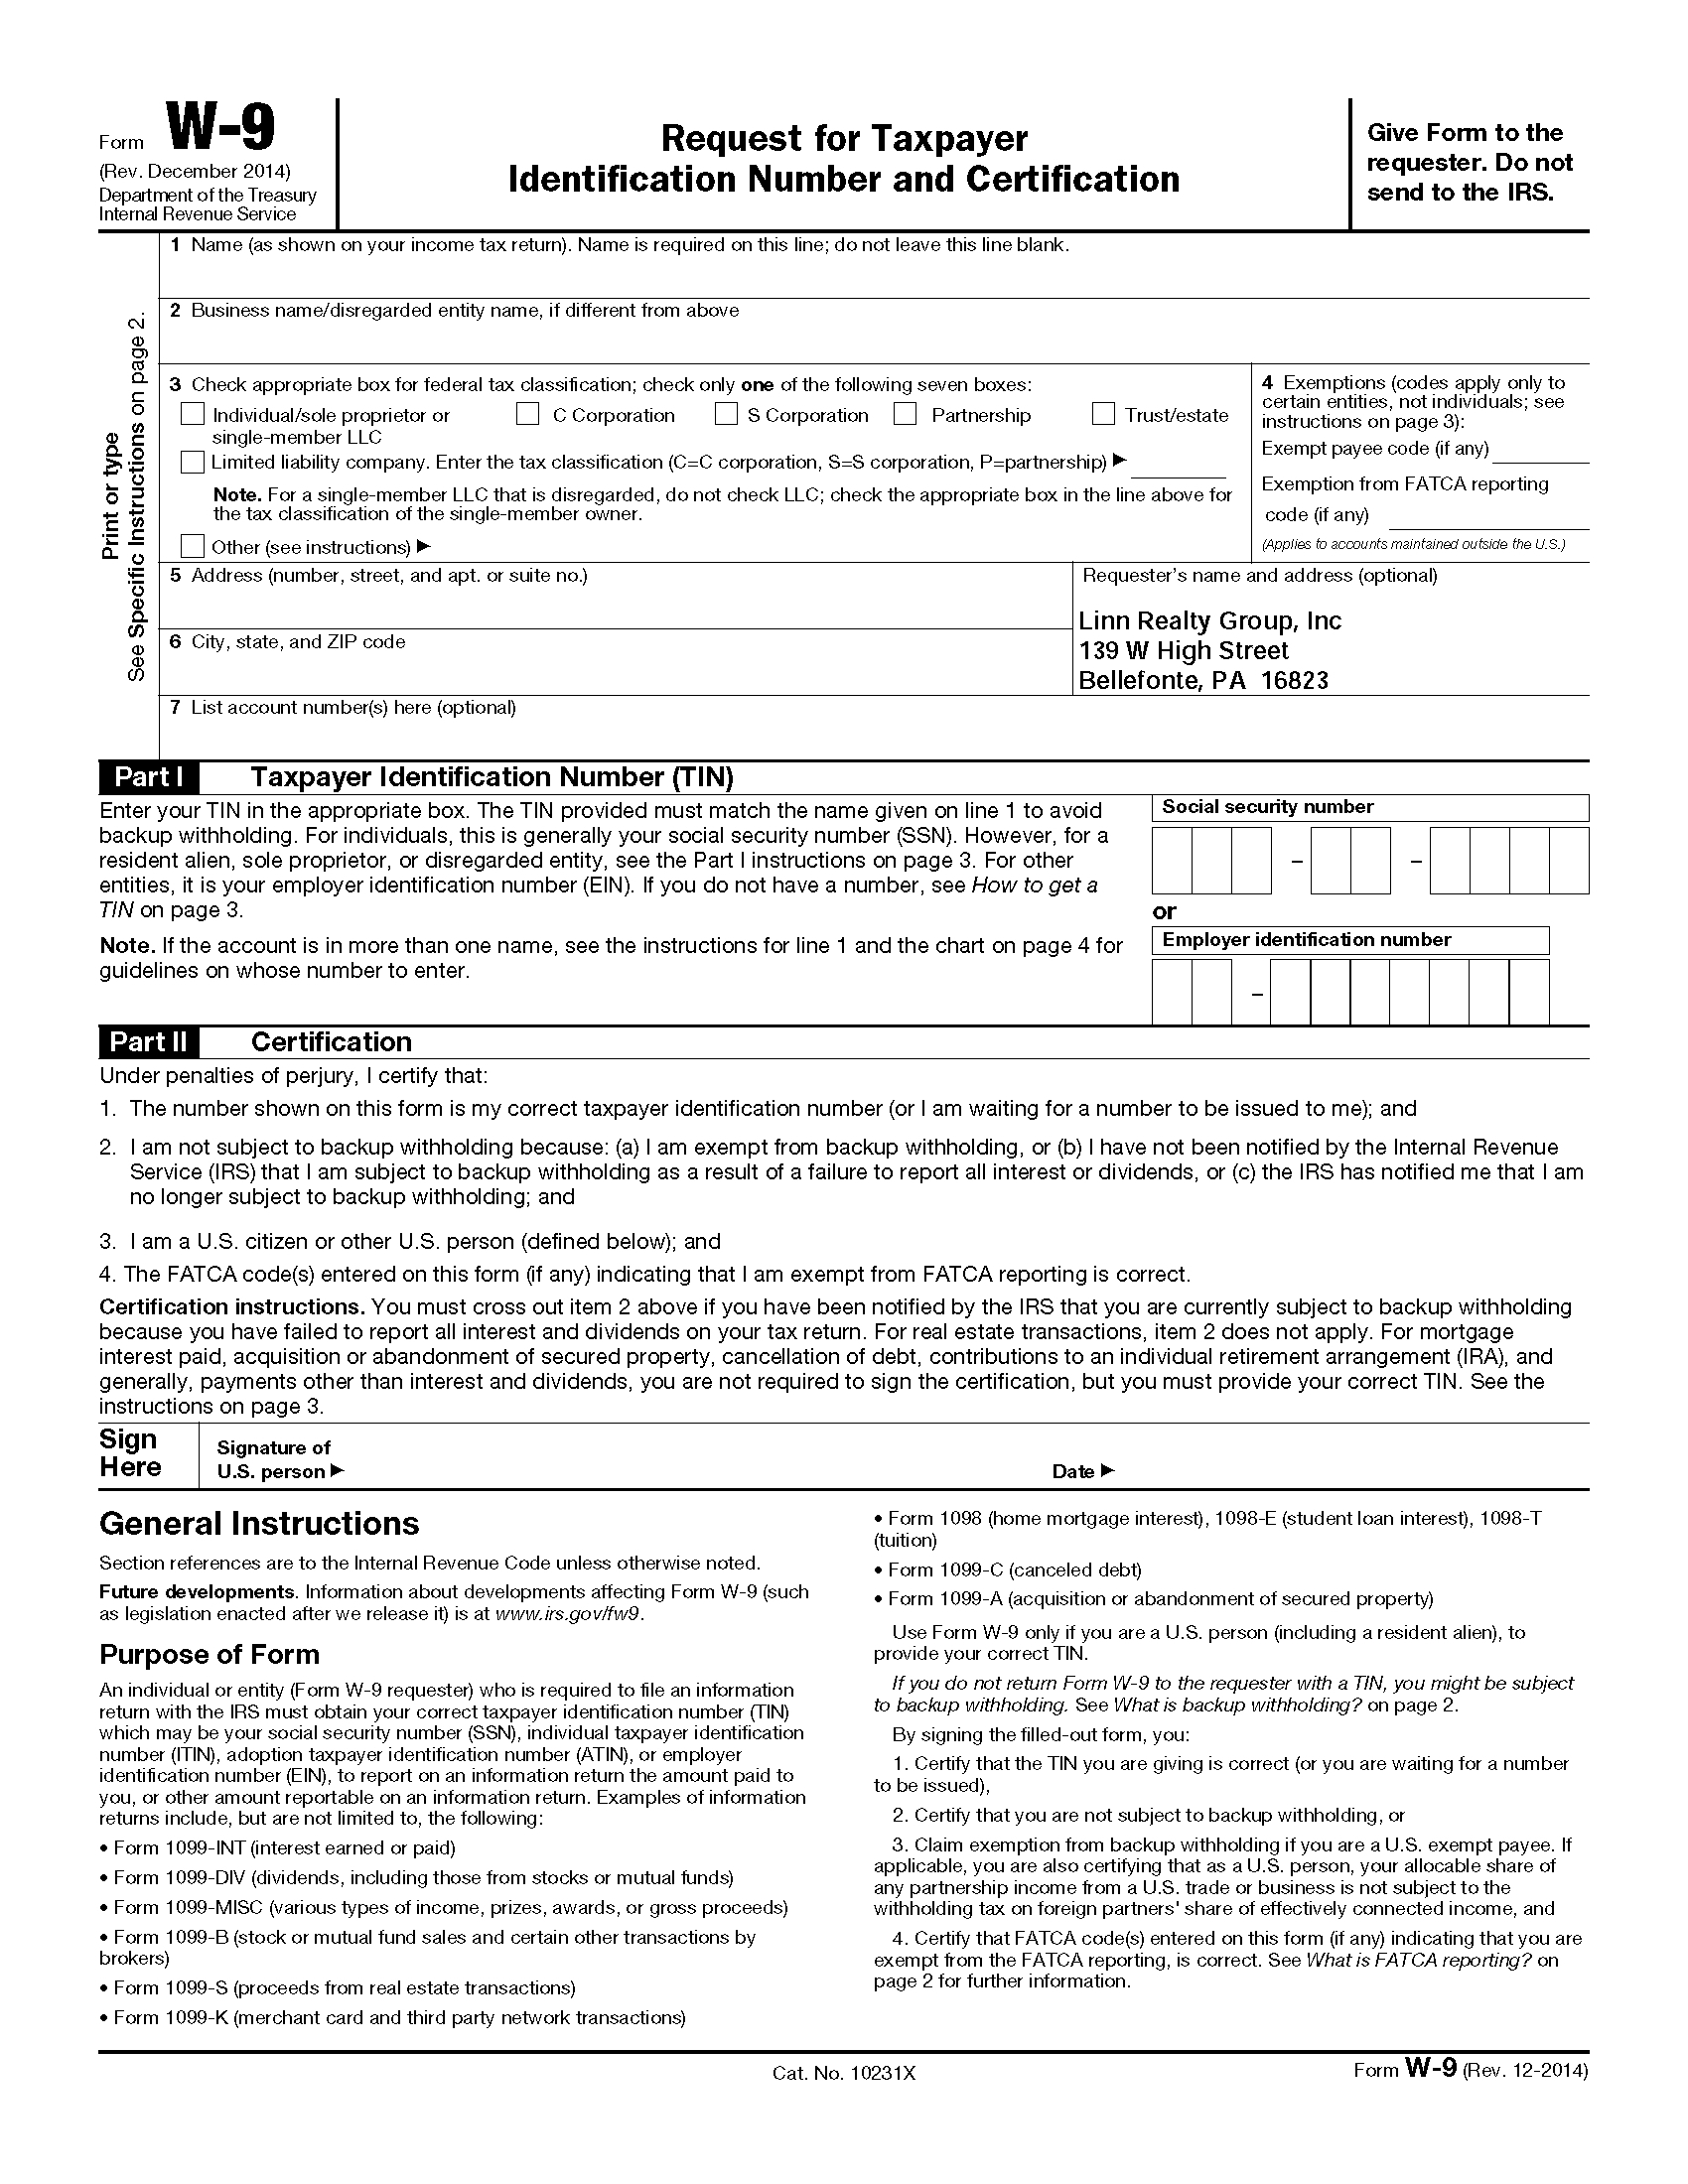 Blank W 9 2020 Form Printable | Example Calendar Printable within W 9 Blank Form